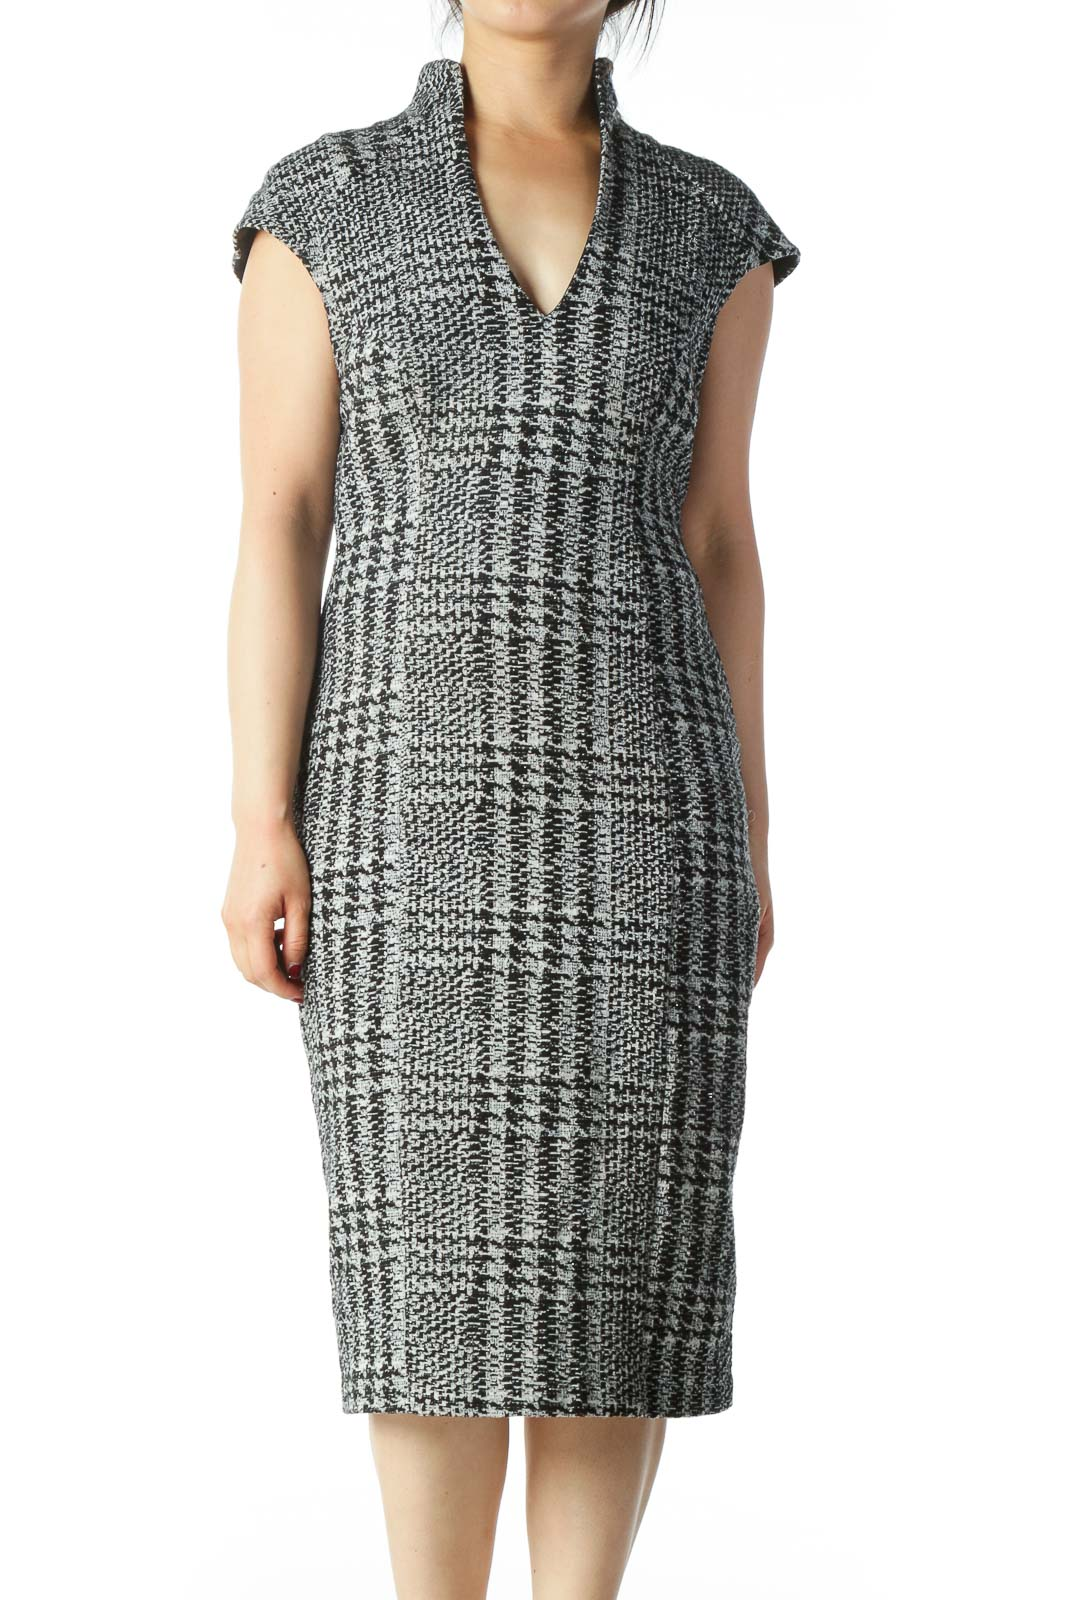 Black White Silver Metallic Thread Knit Dress